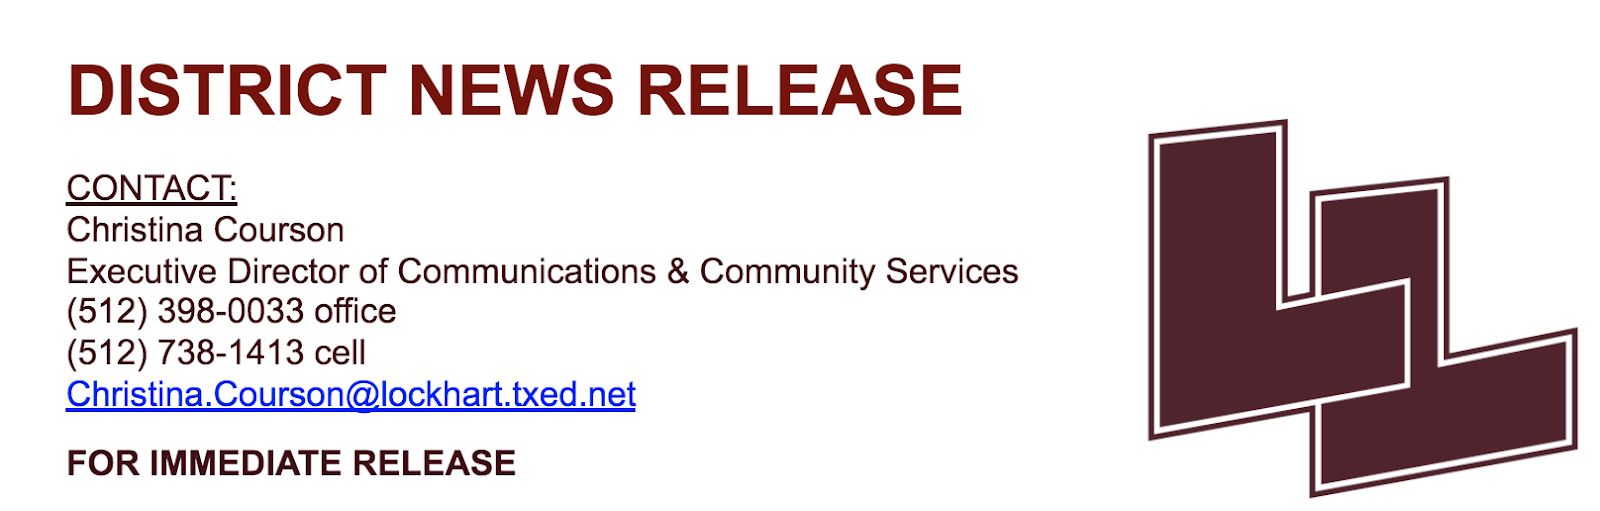 DISTRICT NEWS RELEASE